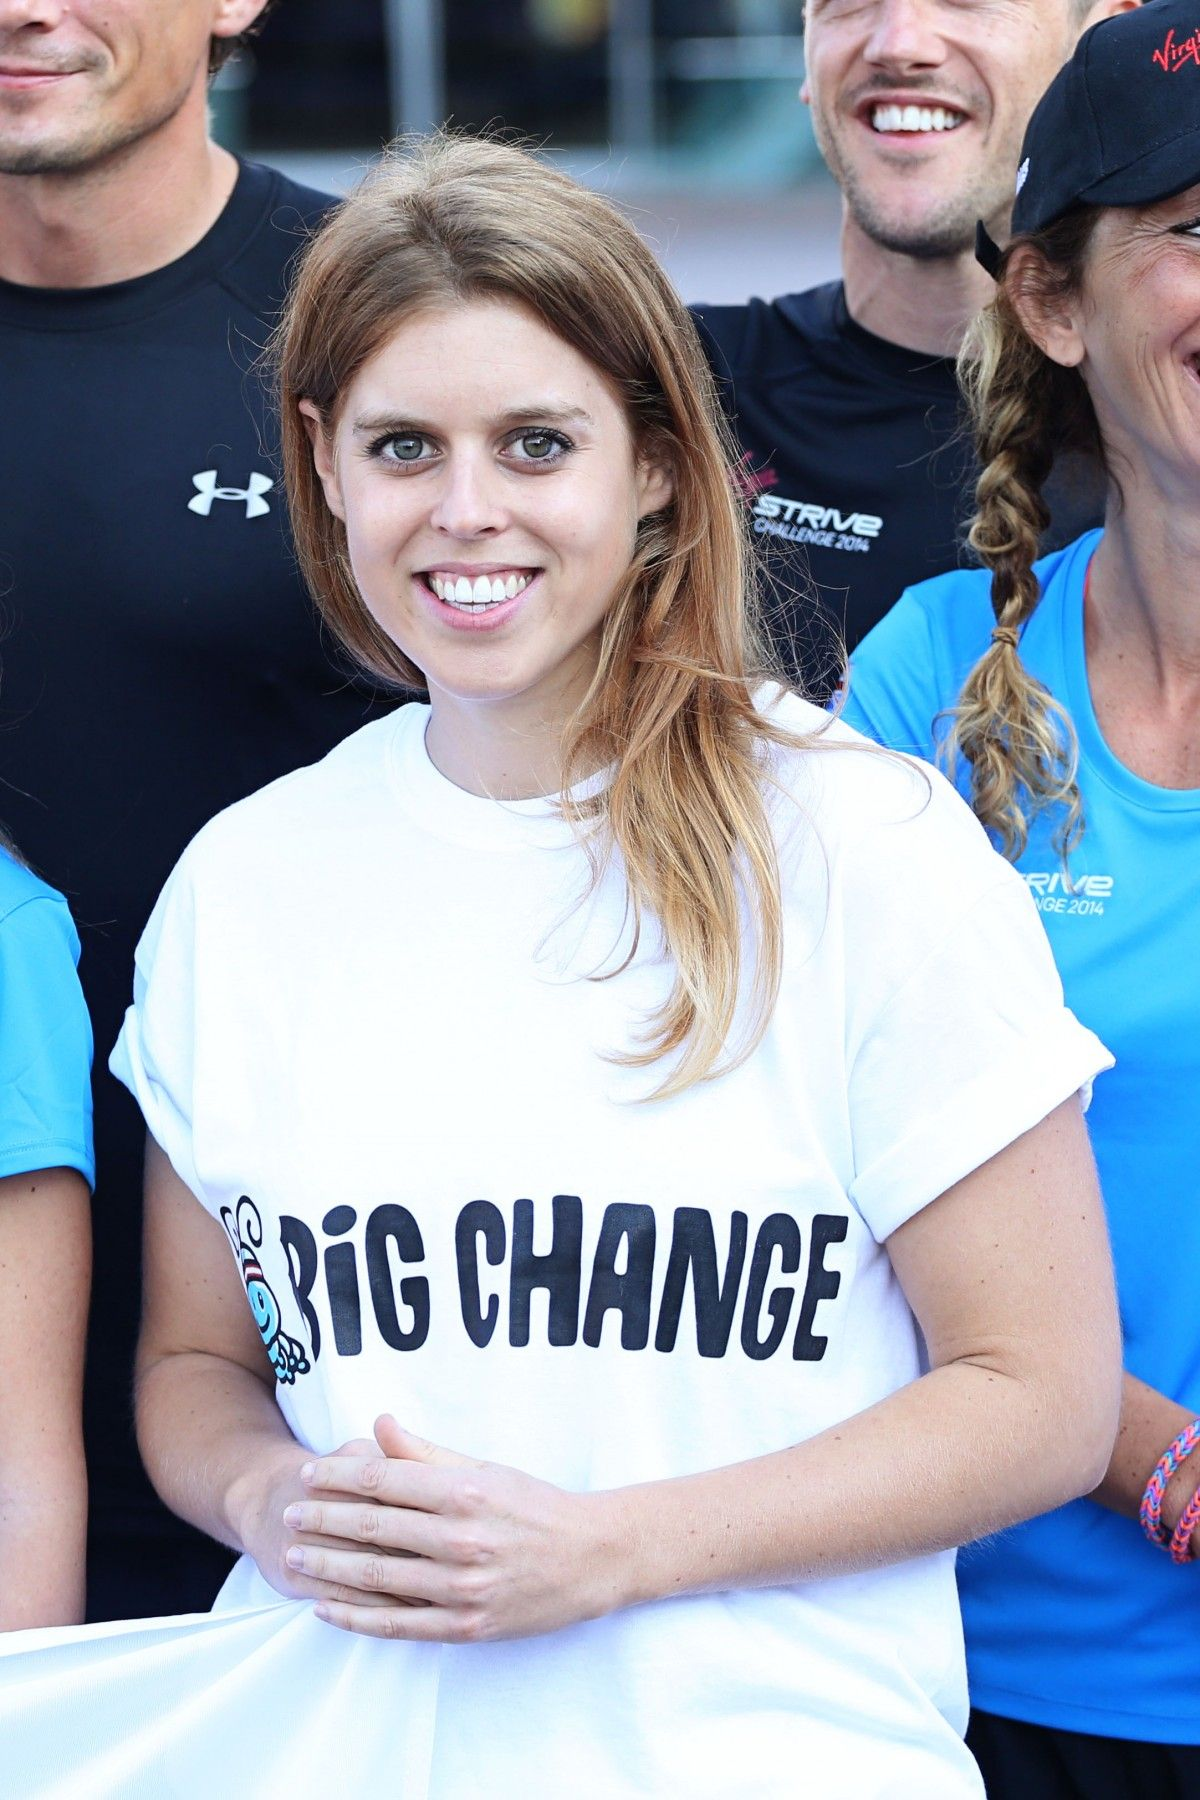 Princess Beatrice wore a Tshirt with her charity's name